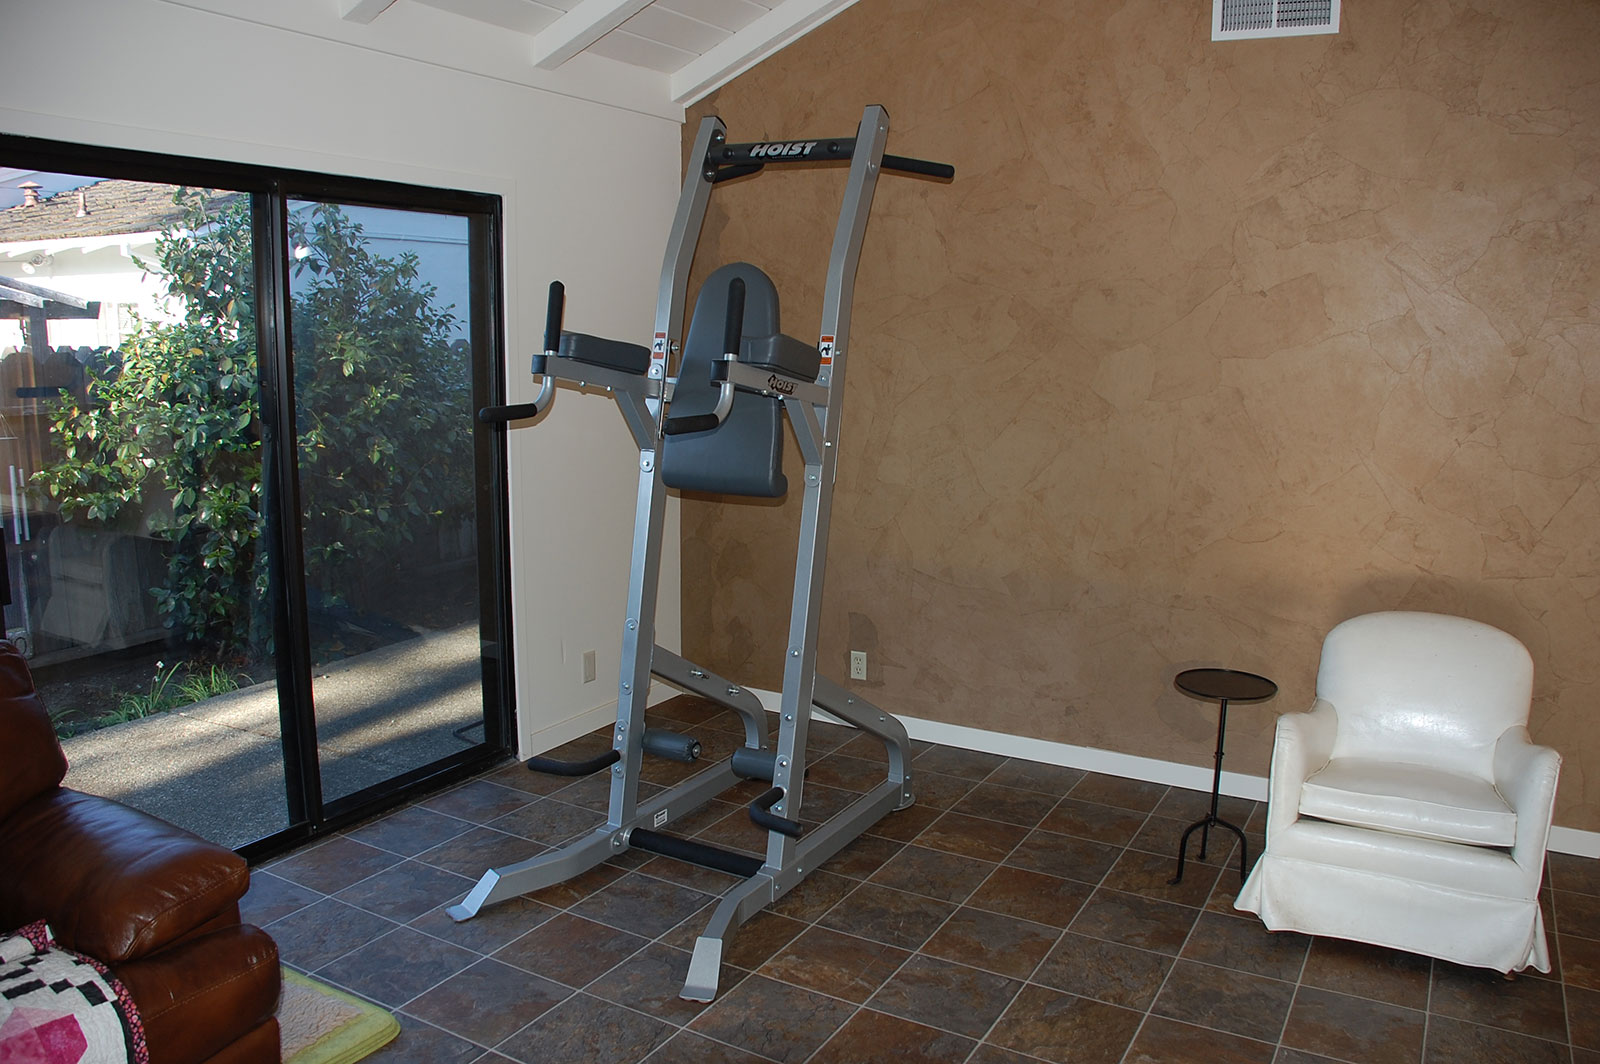 I just purchased a Hoist Fitness Tree   South Bay Riders